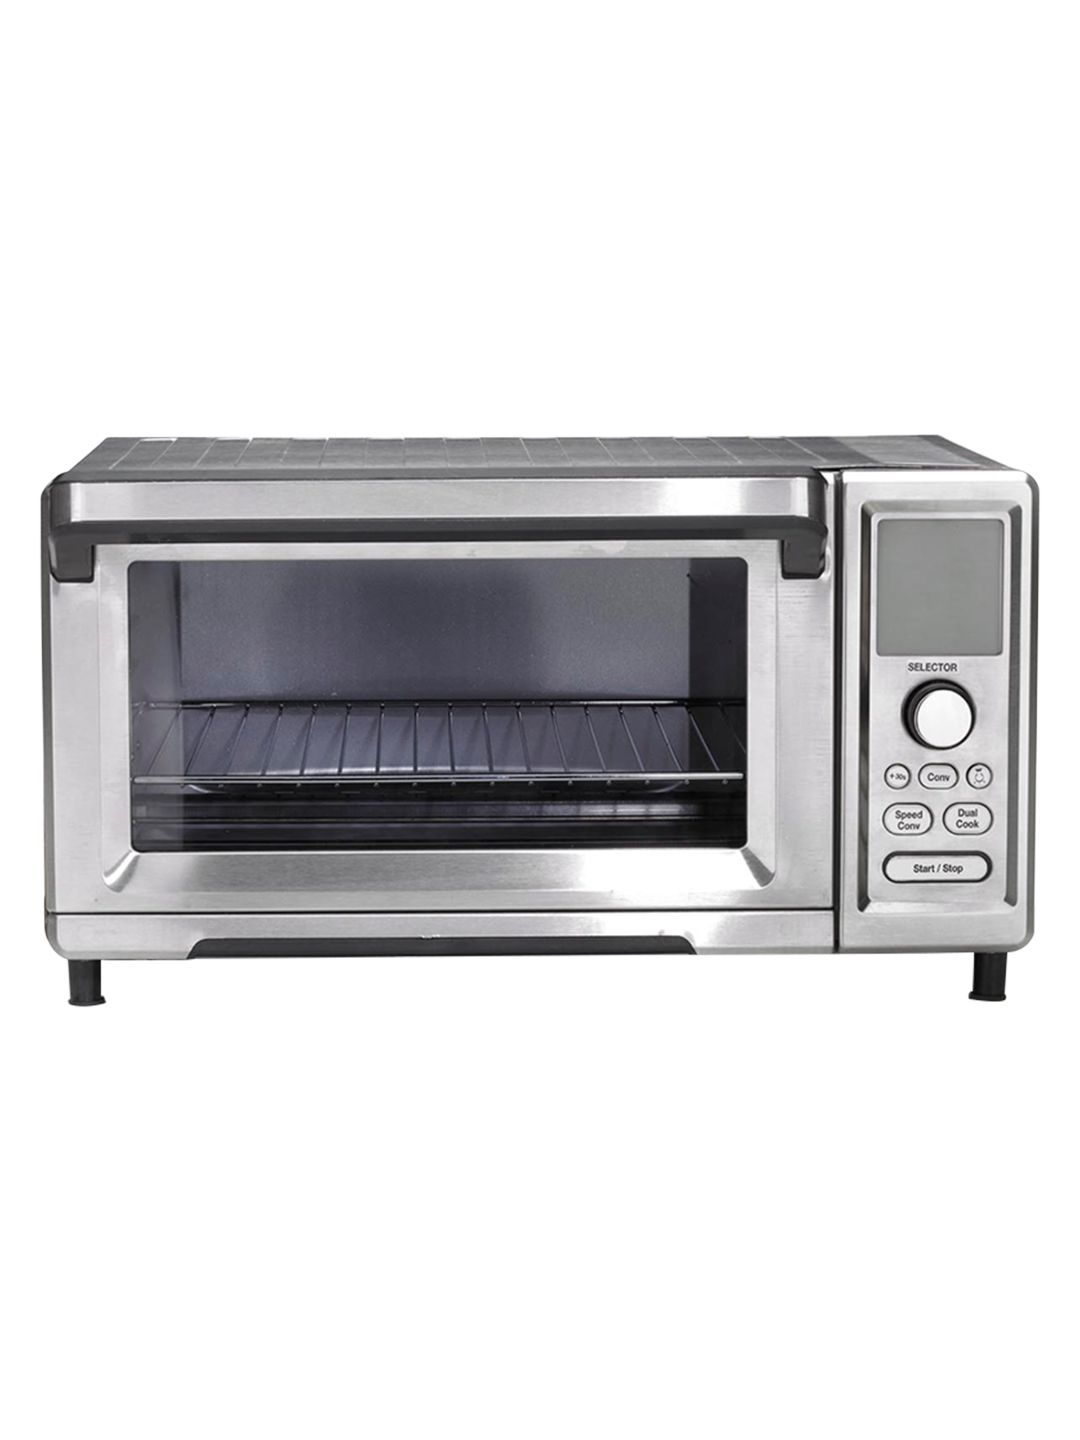 Chef S Convection Toaster Oven Broiler Convection Toaster Oven Toaster Oven Cuisinart Toaster Oven